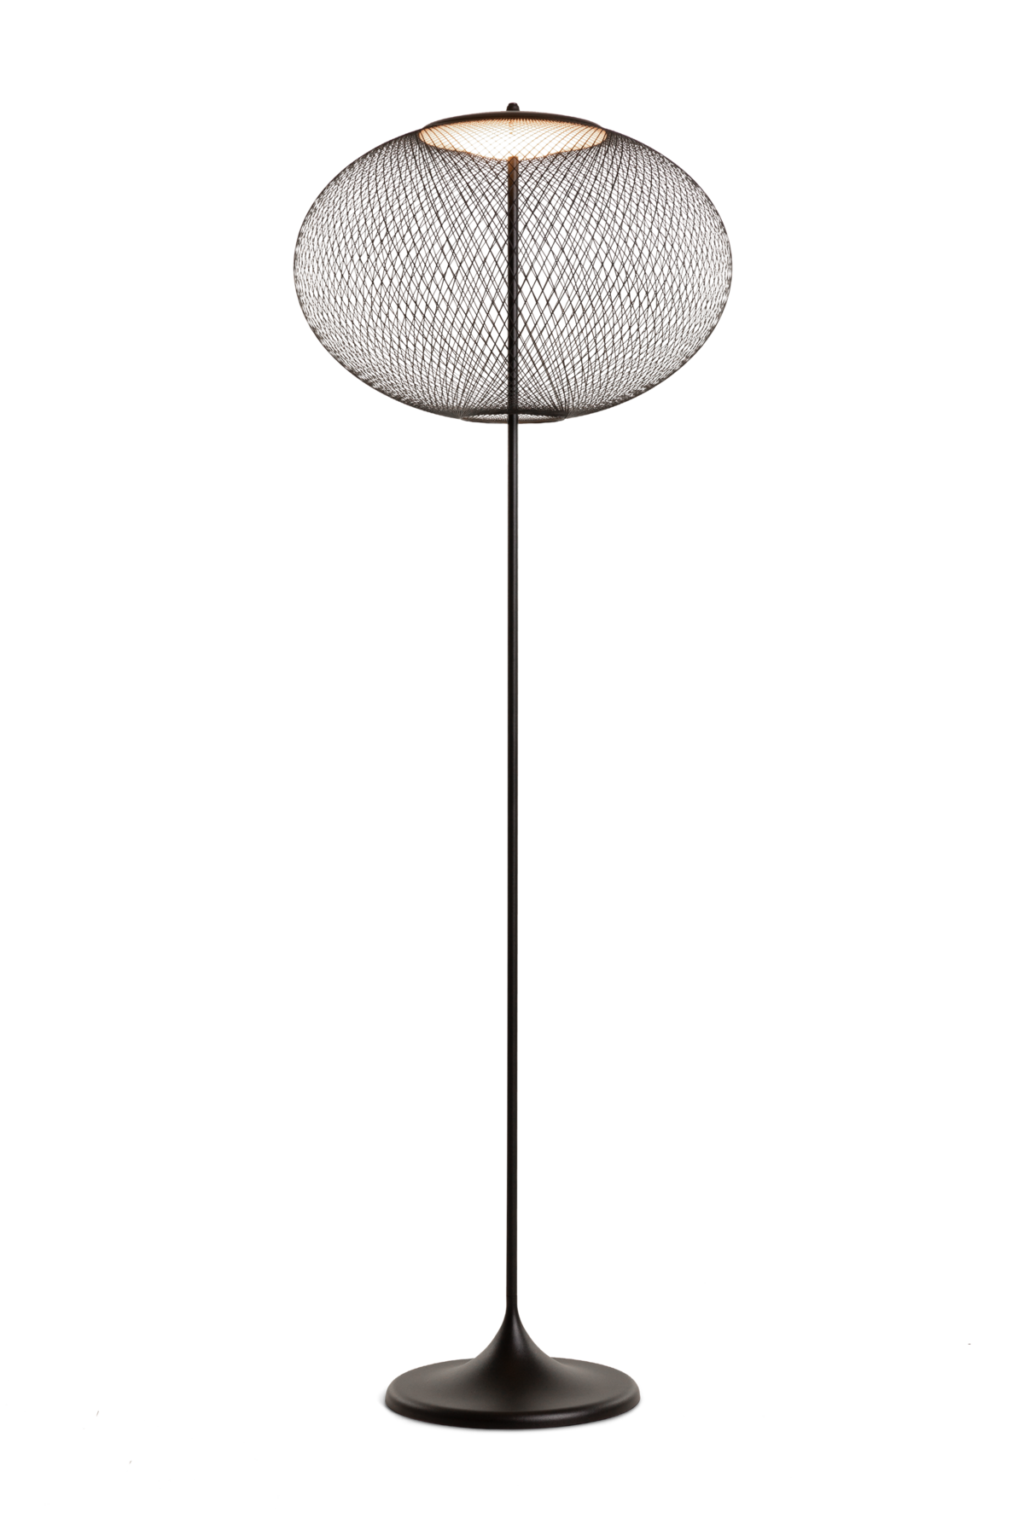 https://desidea.hu/wp-content/uploads/fly-images/160186/moooi-nr2-allolampa3-1024x0.png